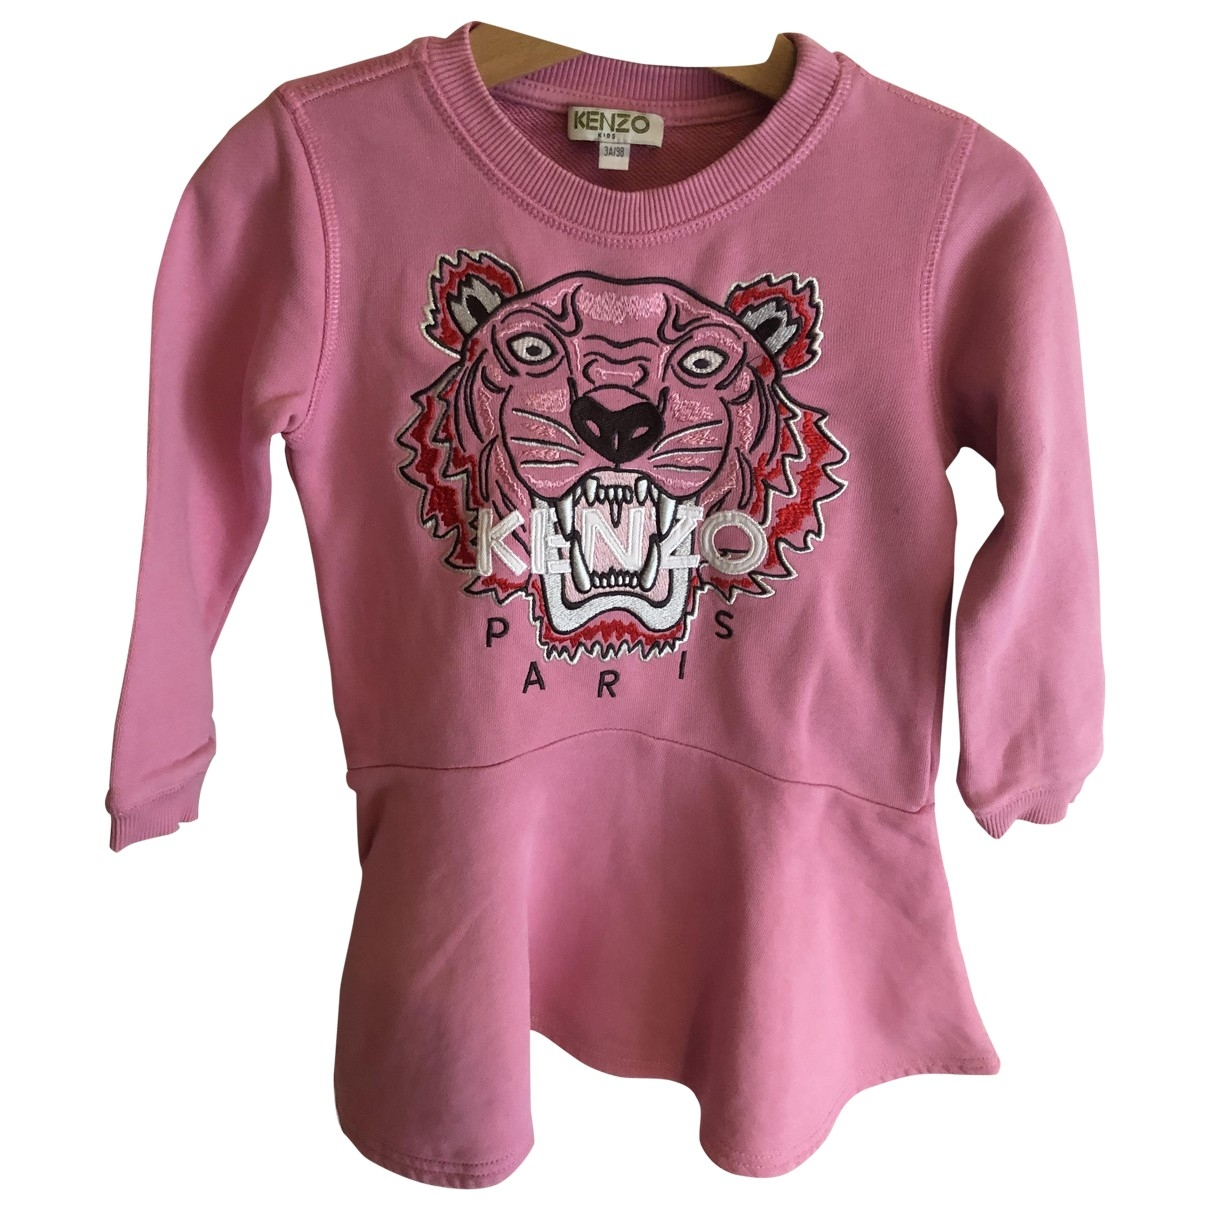 Kenzo \N Pink Cotton dress for Kids 3 years - up to 98cm FR